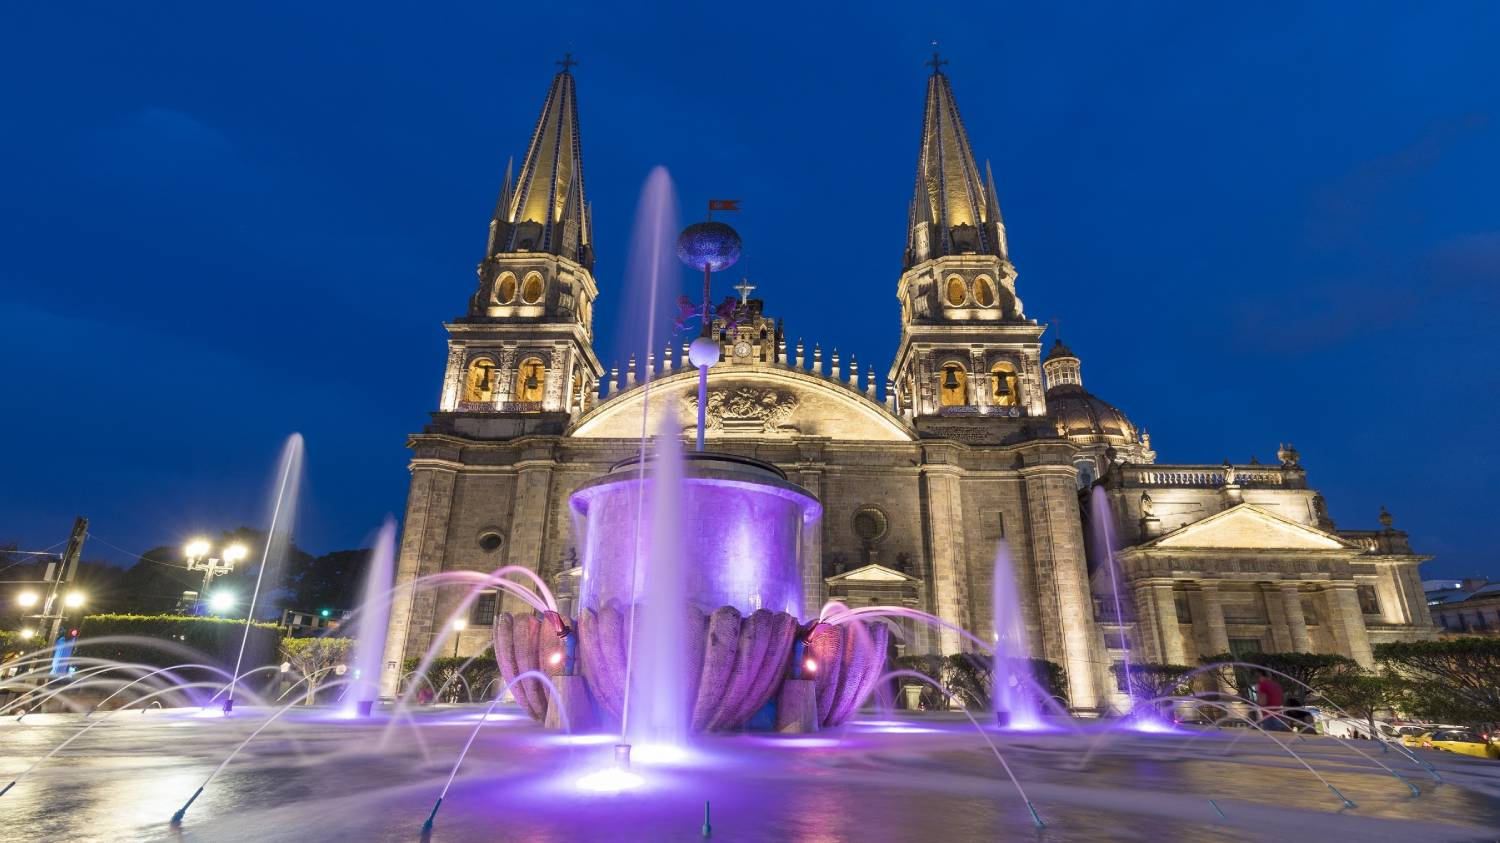 Guadalajara - The Best Places To Visit In Mexico